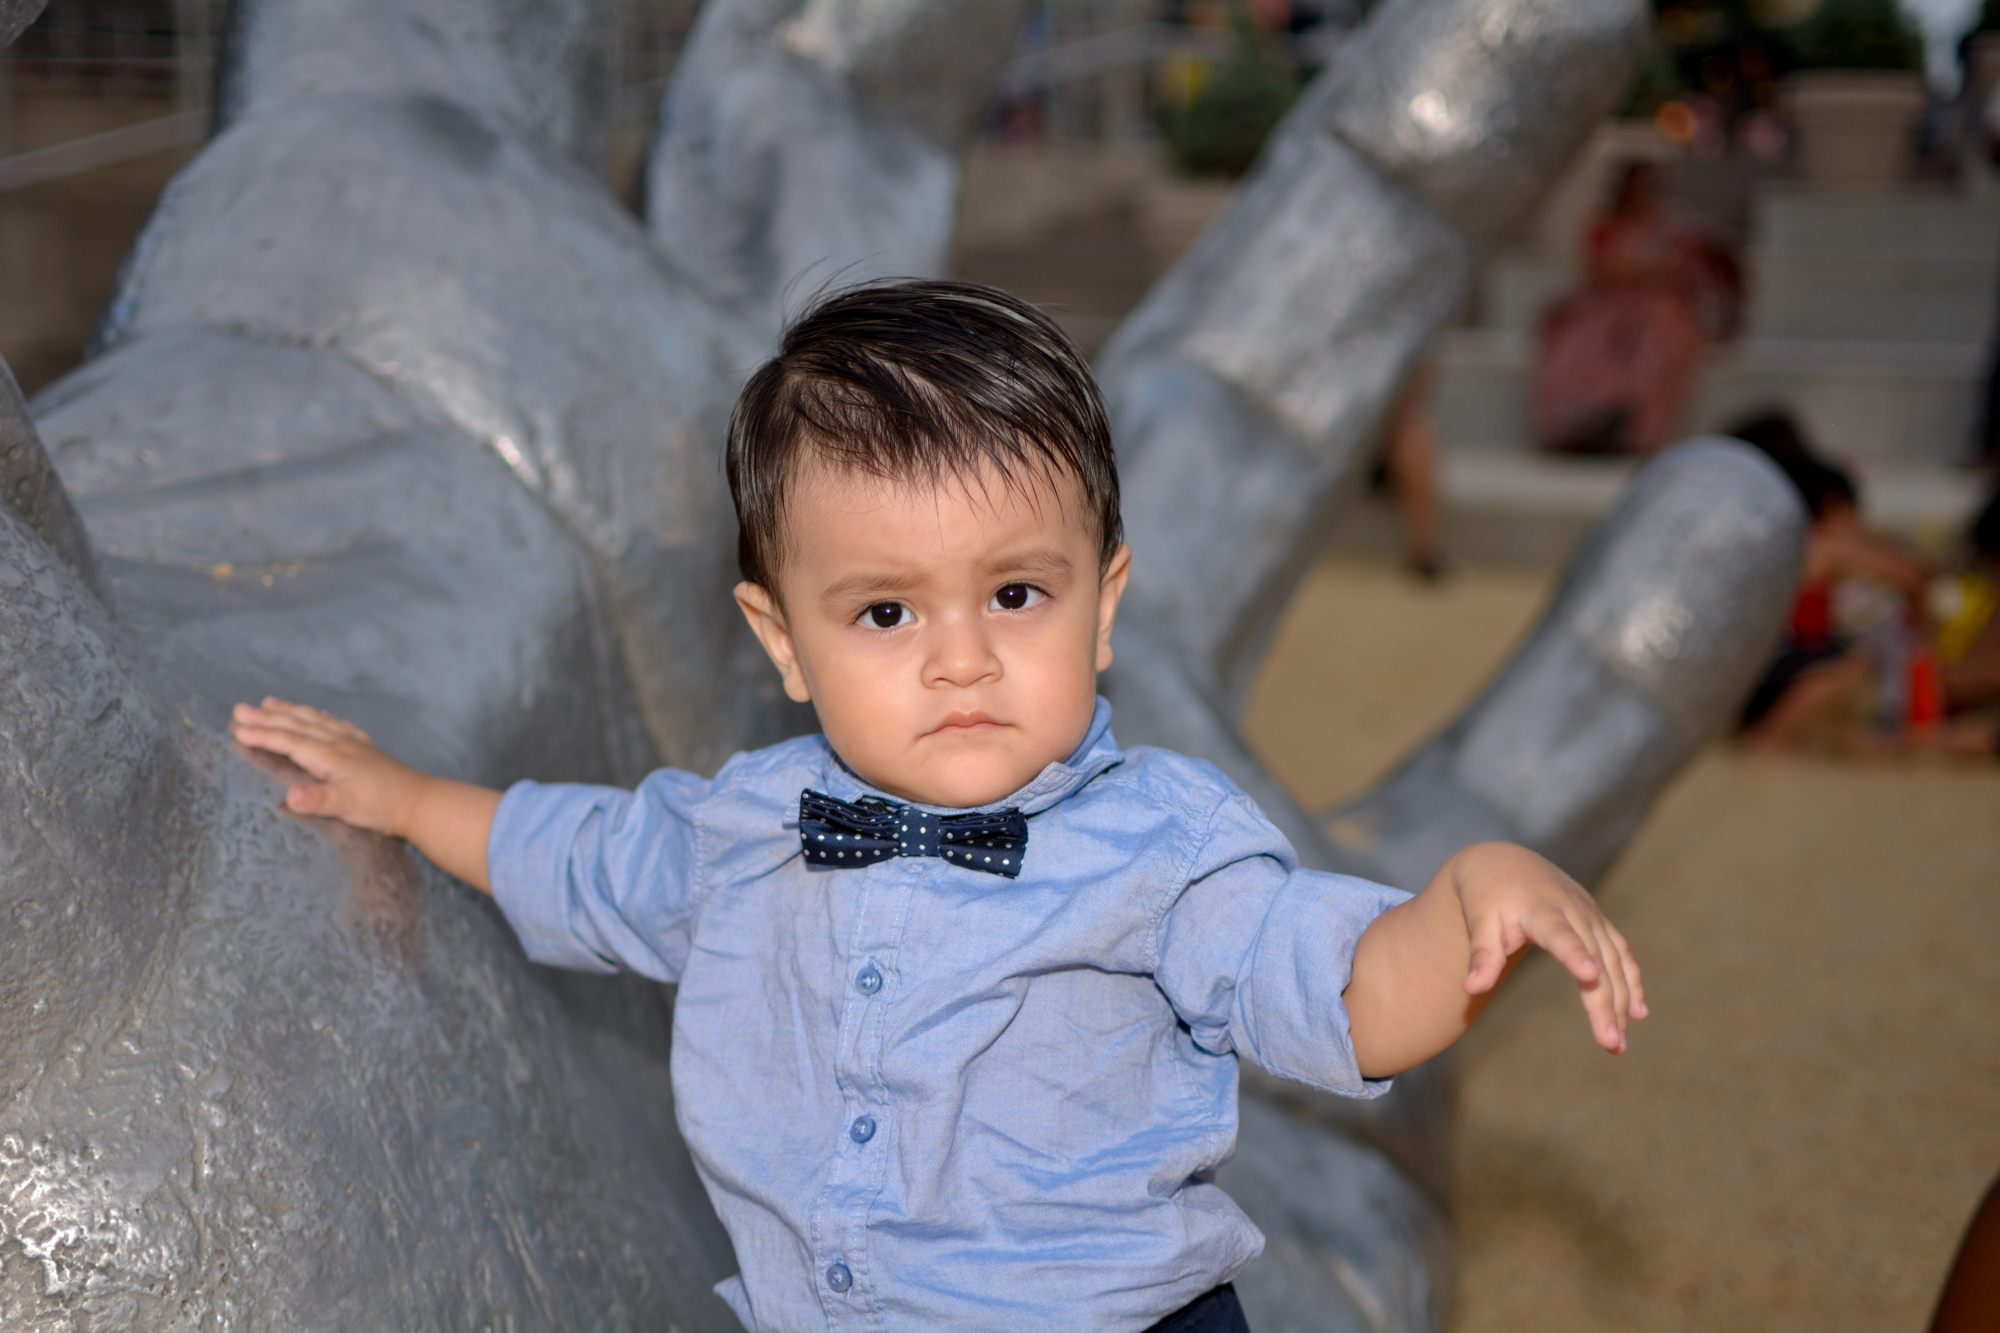 tomas hric photography's stunning family photographer portrait of handsome little boy in front of a giant hand national harbor